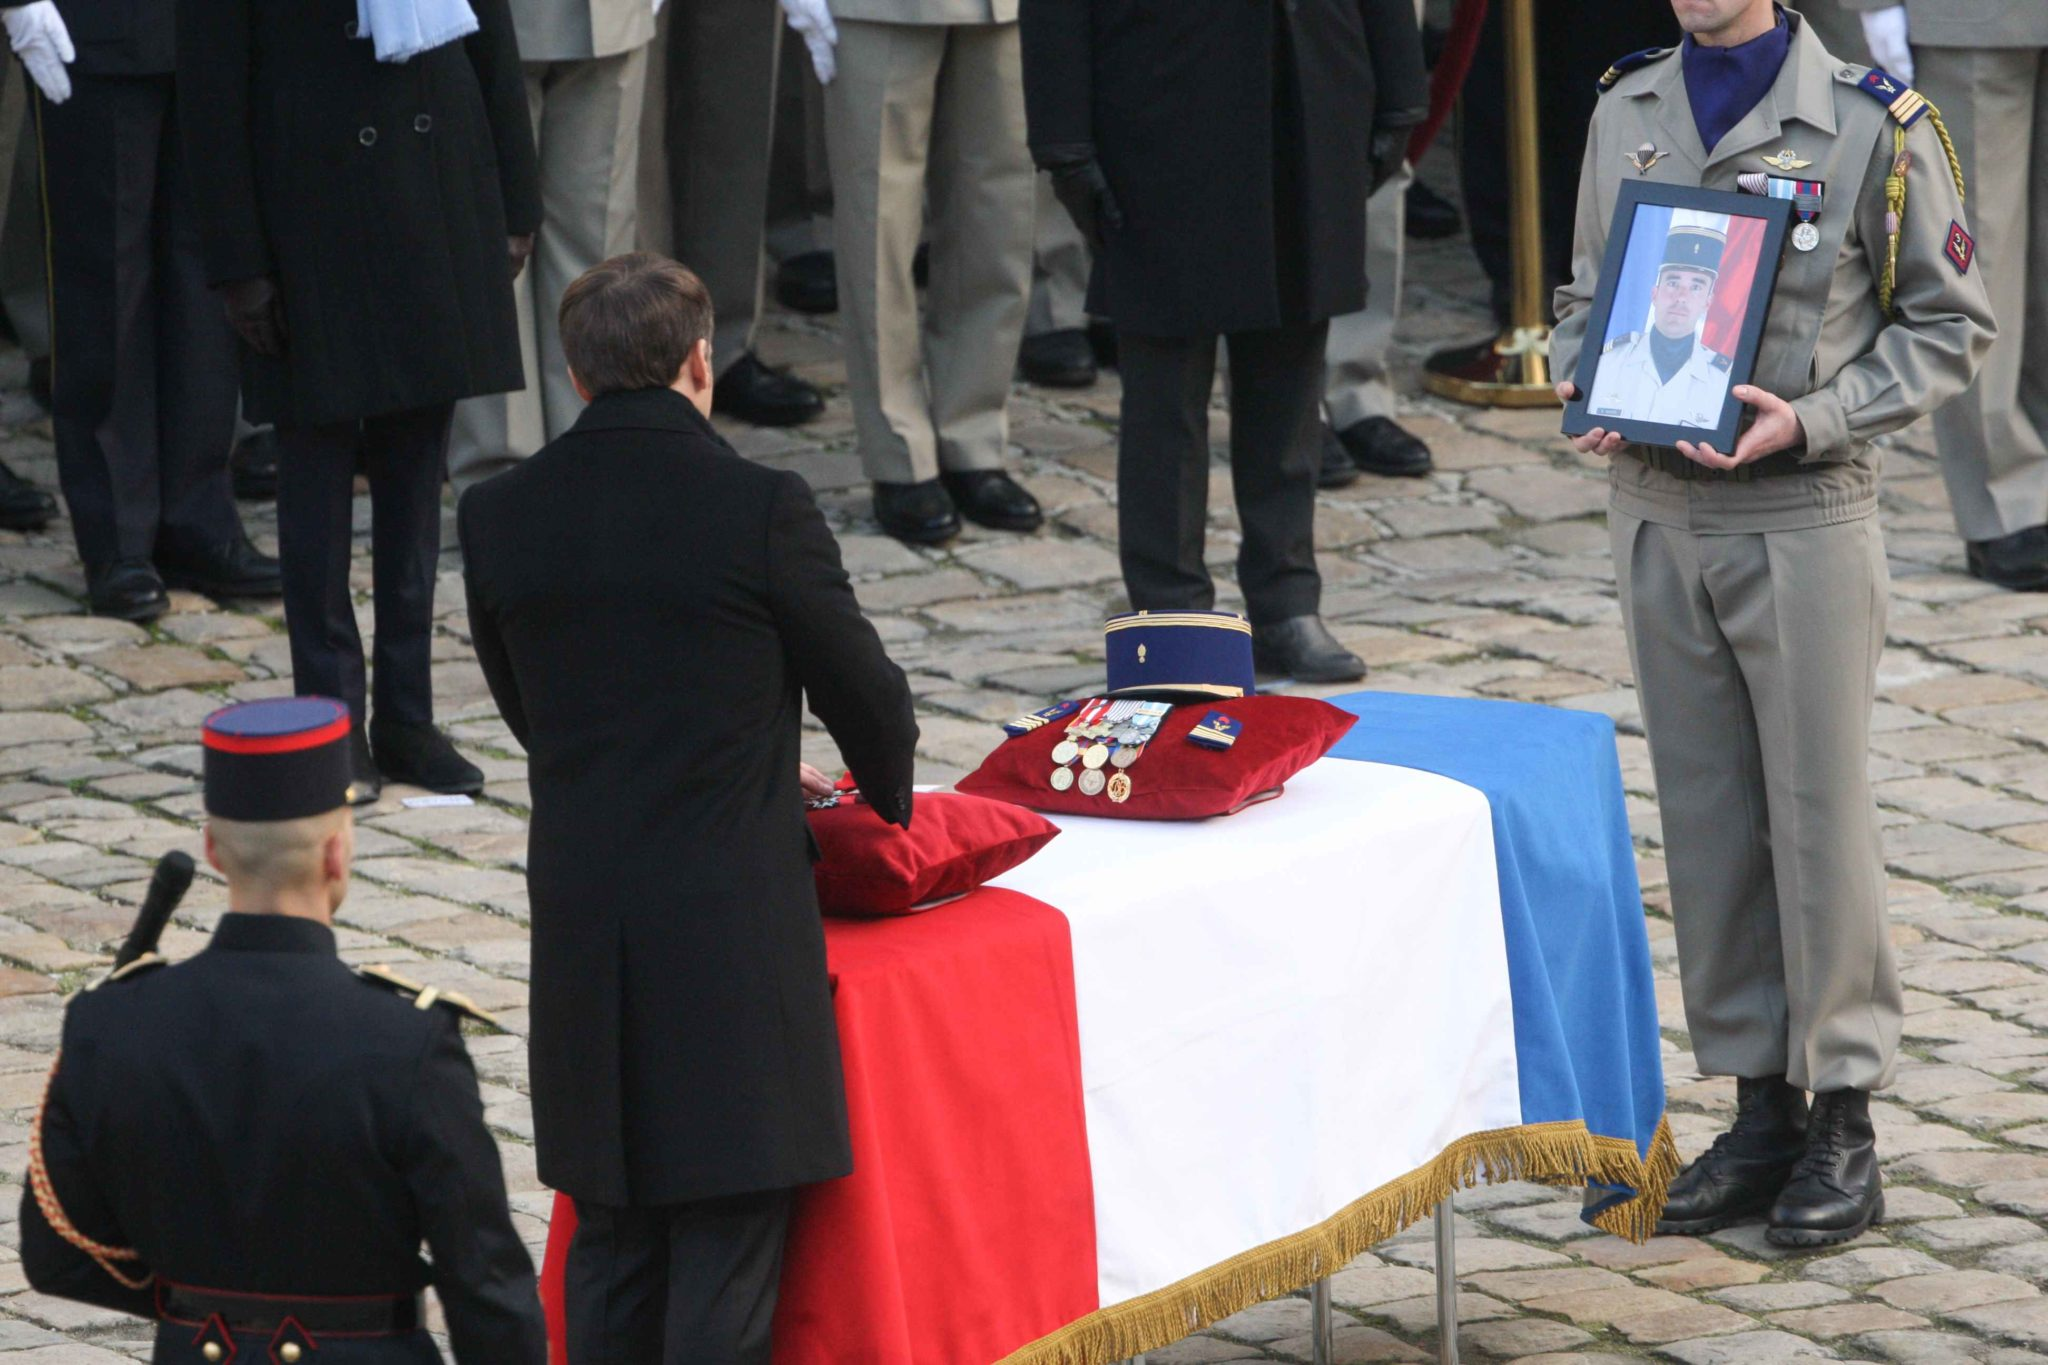 French President Emmanuel Macron posthumously awards a soldier with the Legion of Honor during a tribute ceremony on December 2, 2019 at the Invalides monument, in Paris, for the 13 French soldiers killed in Mali. In its biggest military funeral in decades